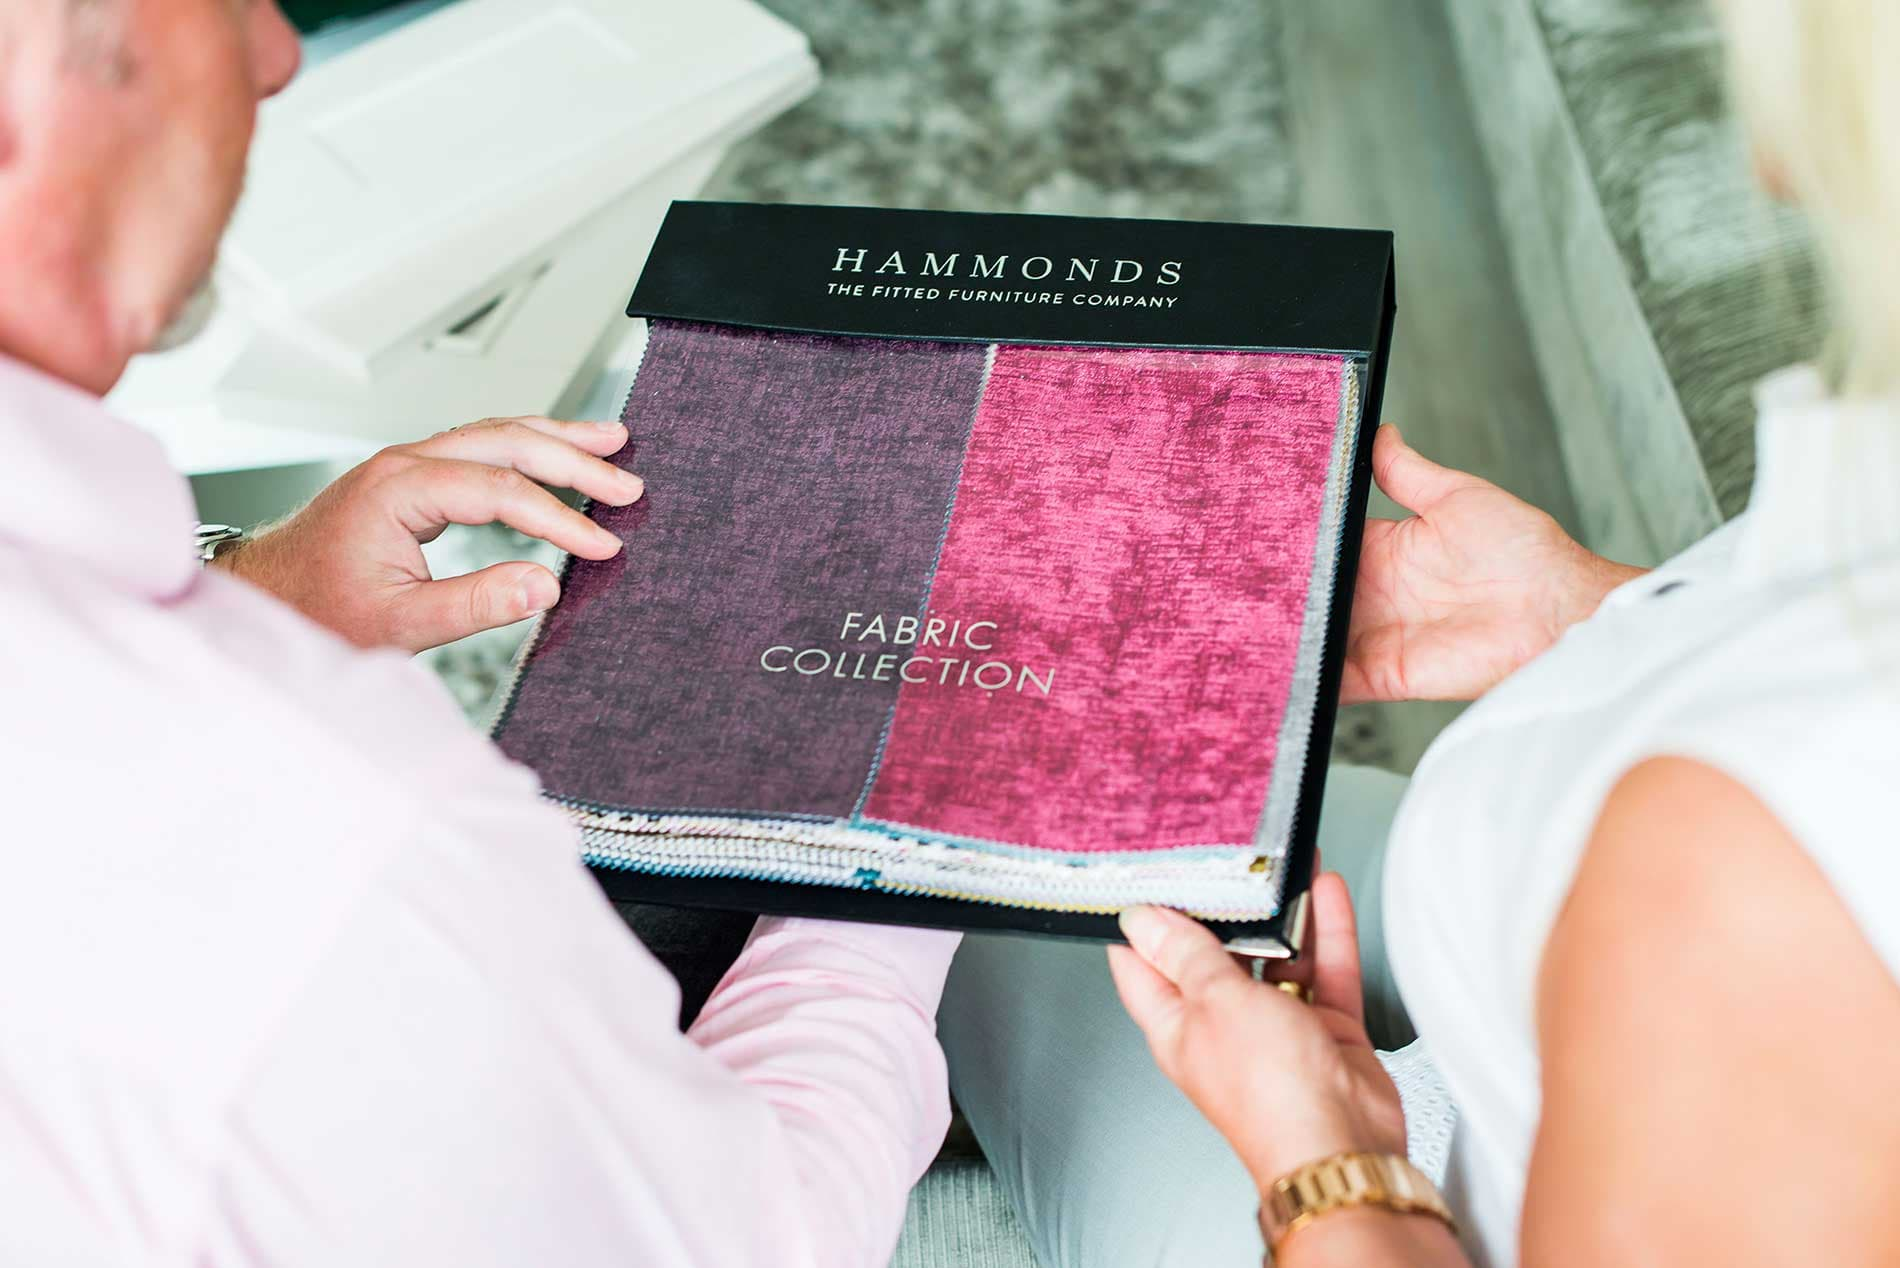 Hammonds fabric collection